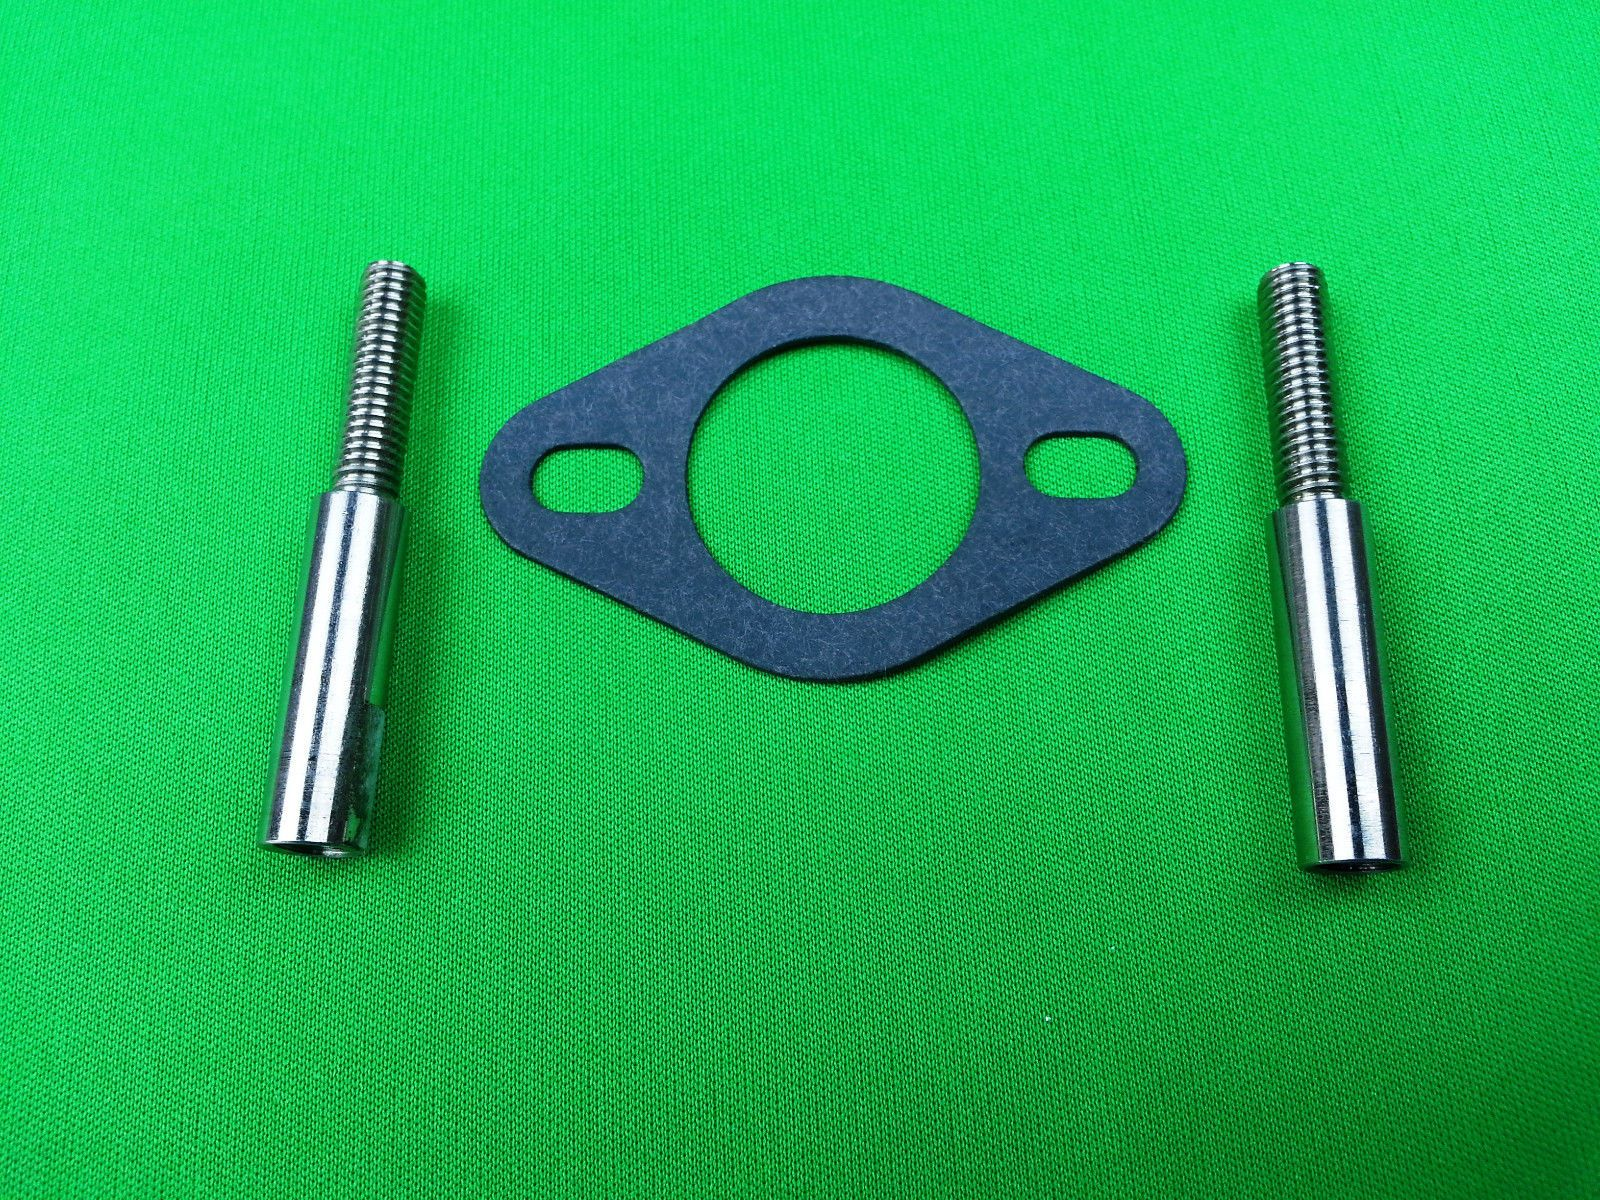 6 millimeter stud extenders and gasket to use with 20483